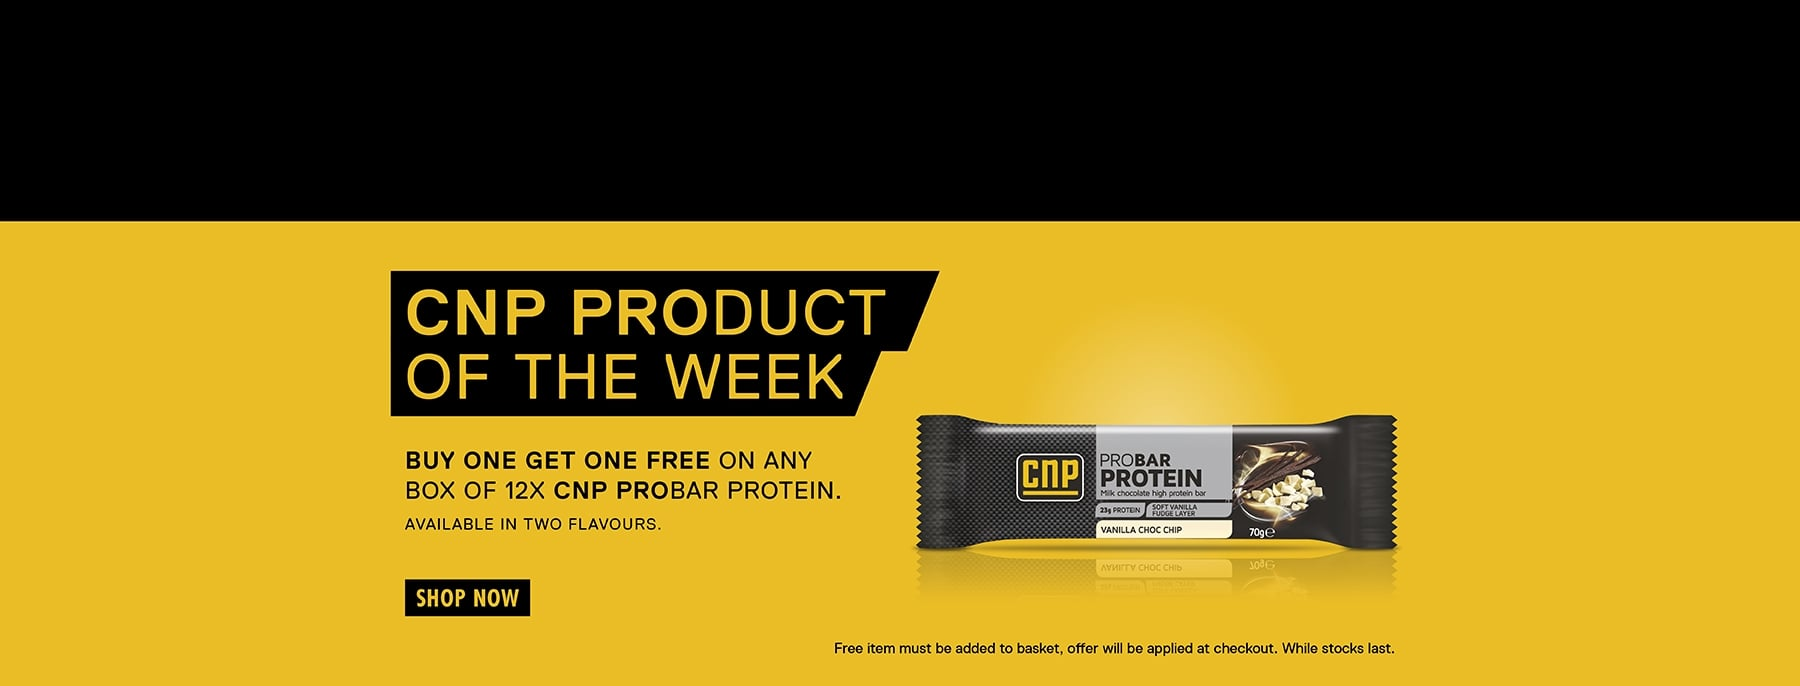 Product of the Week #3